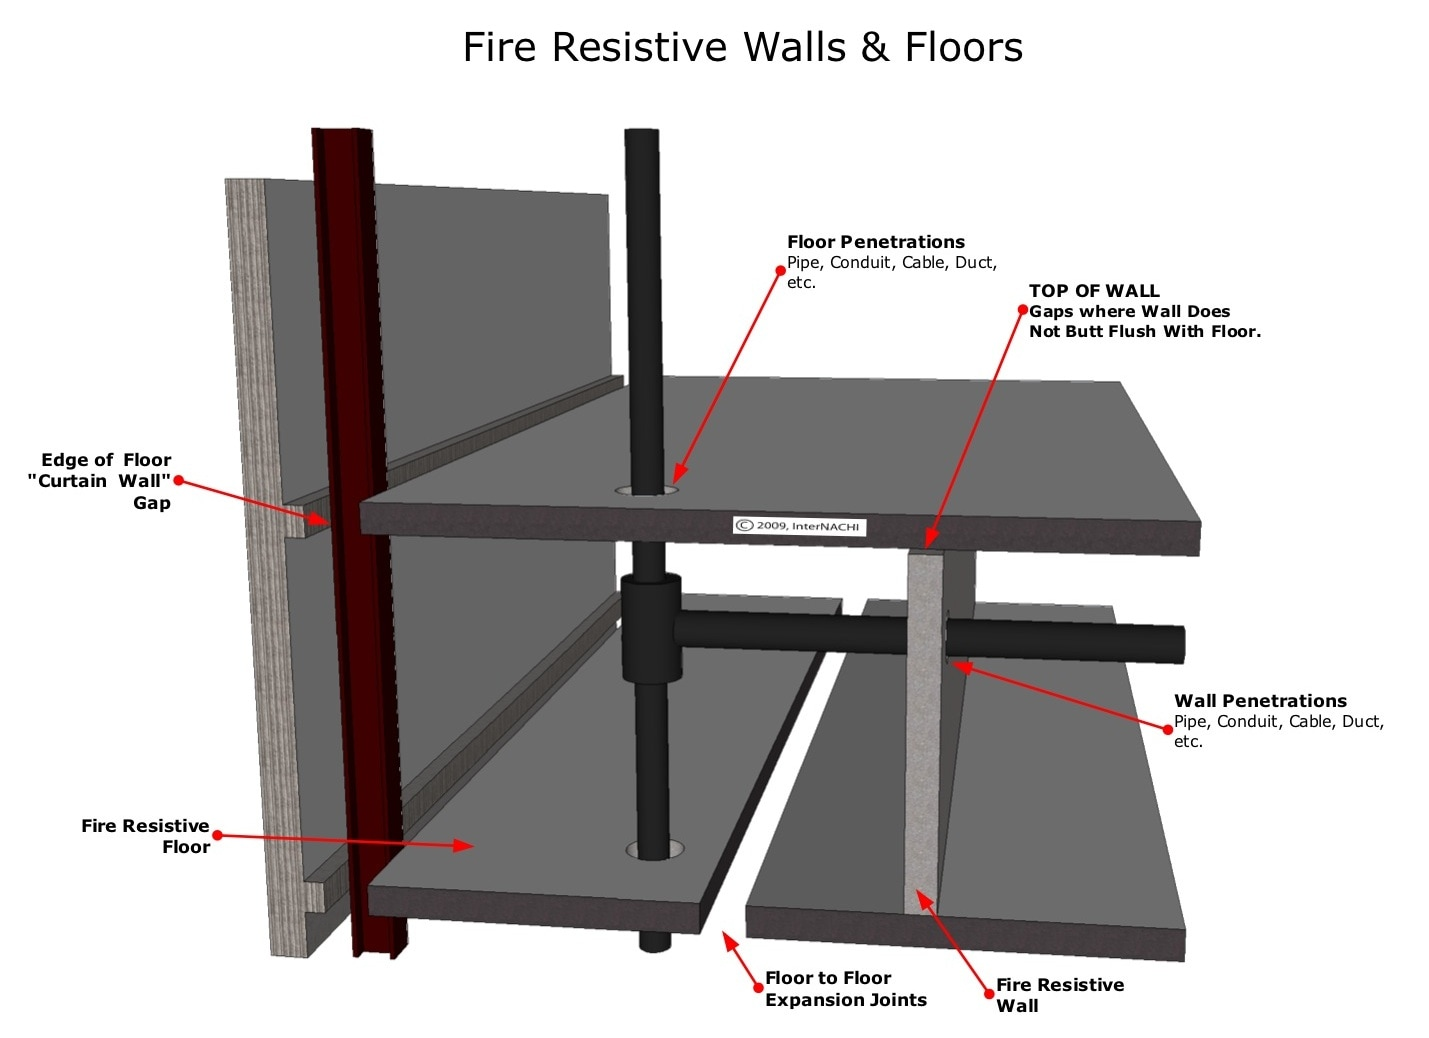 Fire resistive walls and floors.